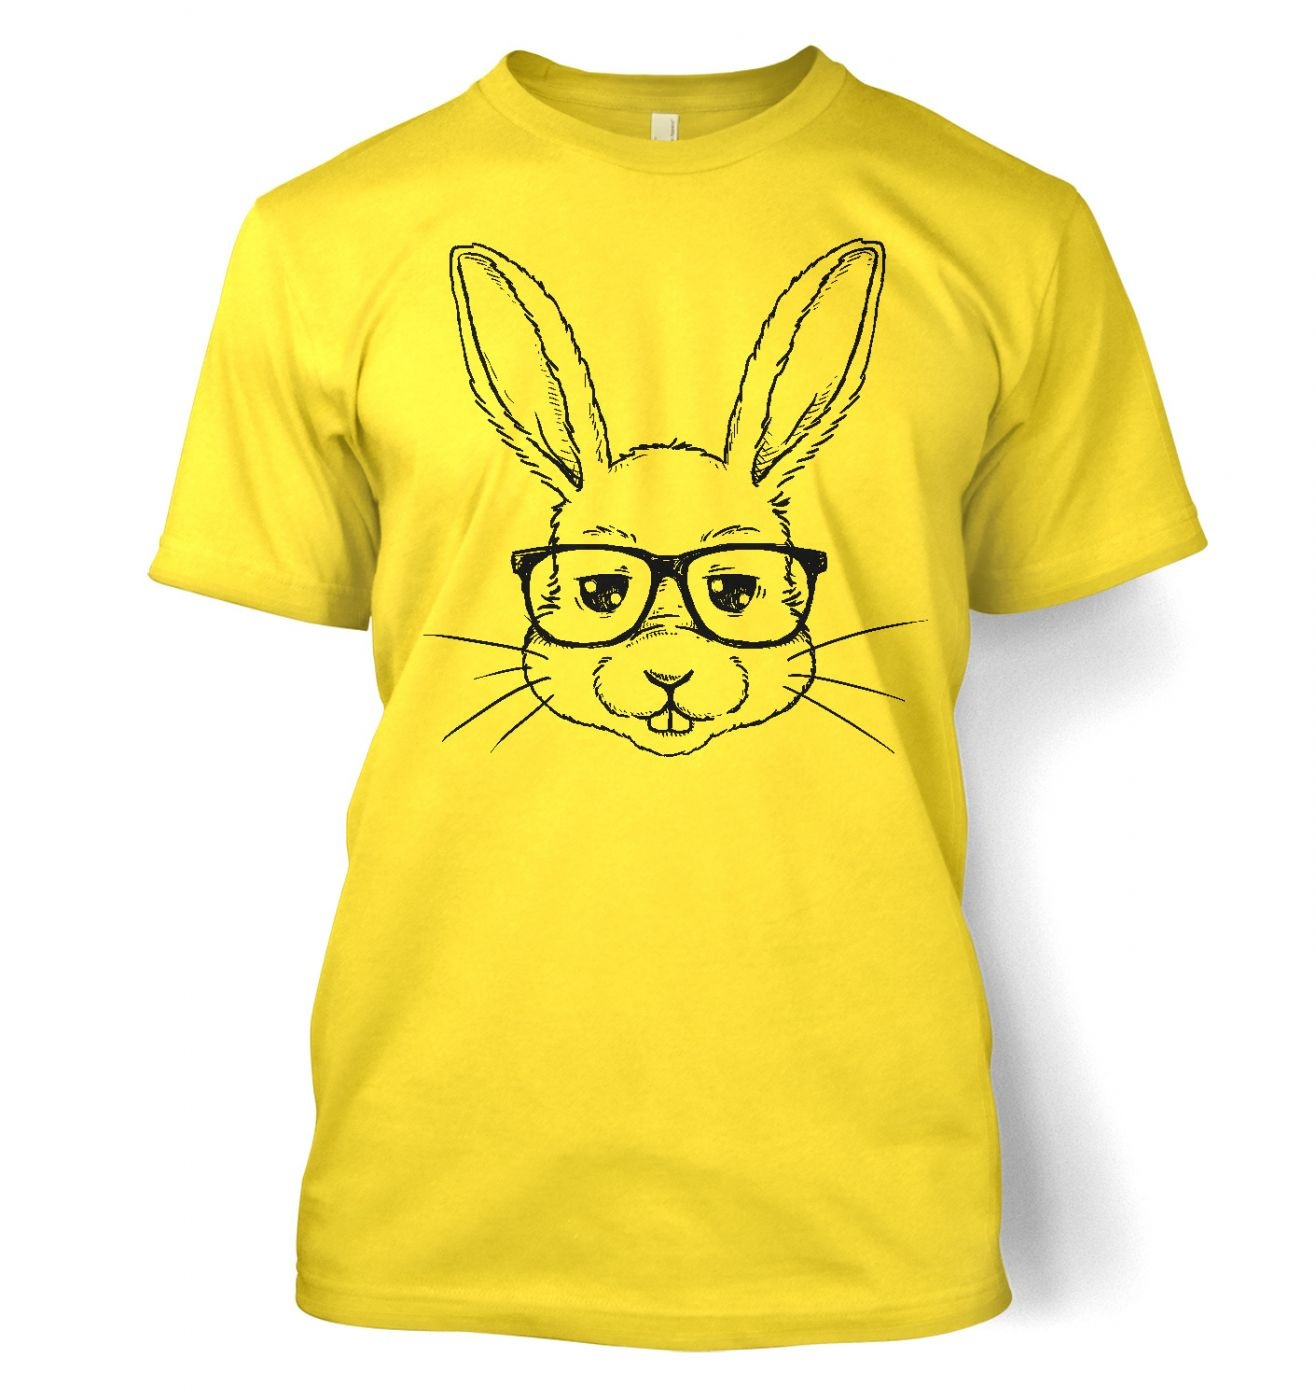 geek bunny t shirt somethinggeeky. Black Bedroom Furniture Sets. Home Design Ideas